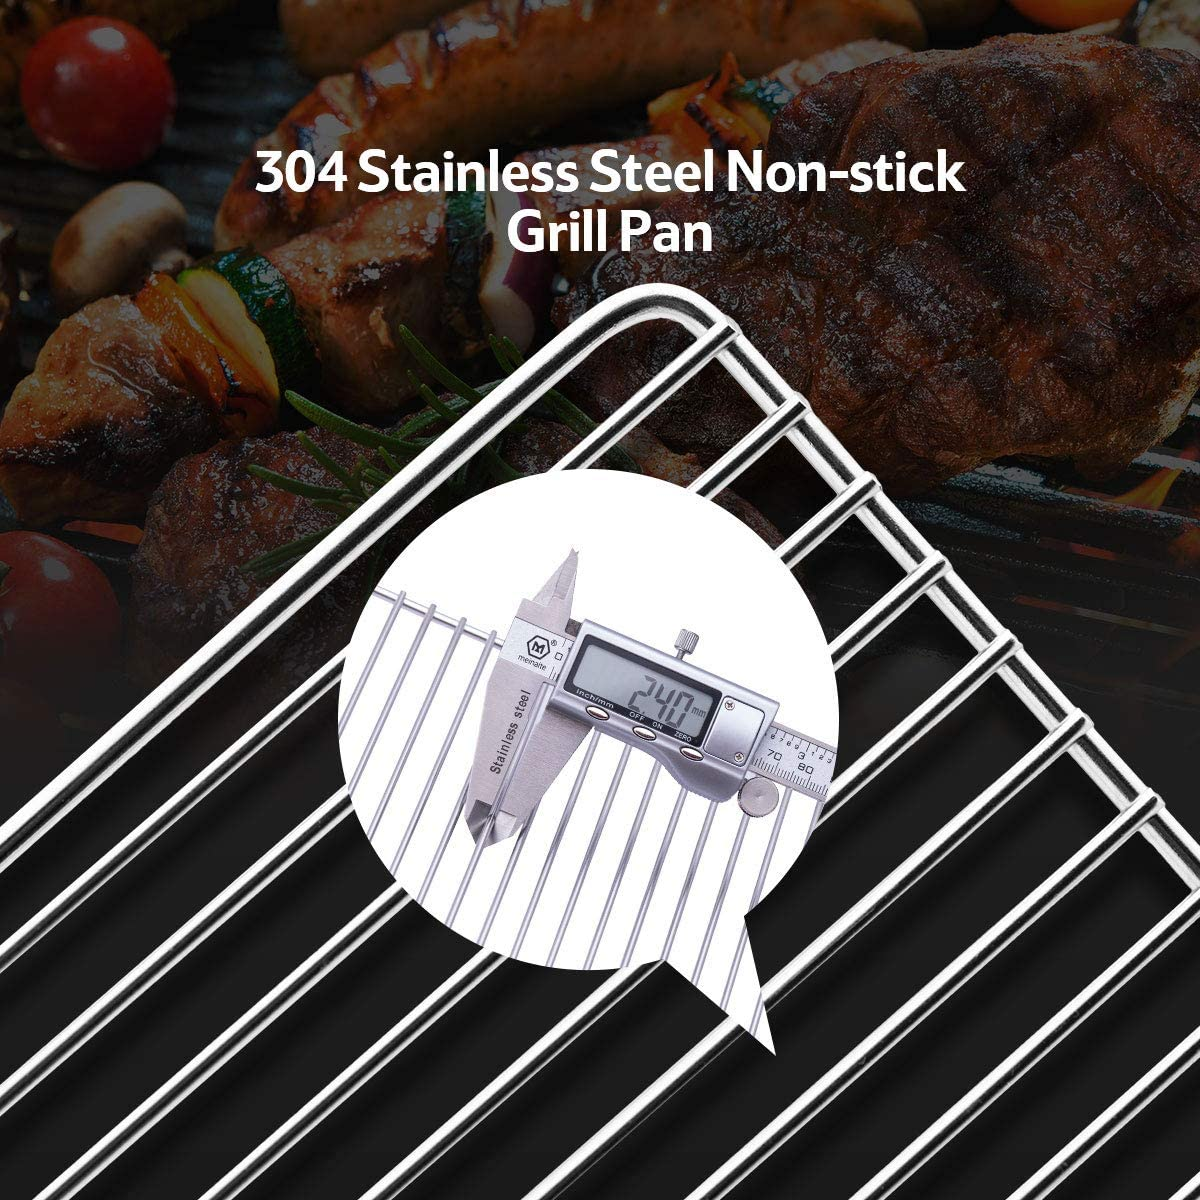 Naturehike Camp Grill Folding Campfire Grill Portable Grill Lightweight Steel Mesh Barbecue Grill Camping Grill for Outdoor Camping Cooking Hiking Tailgating Backpacking Party